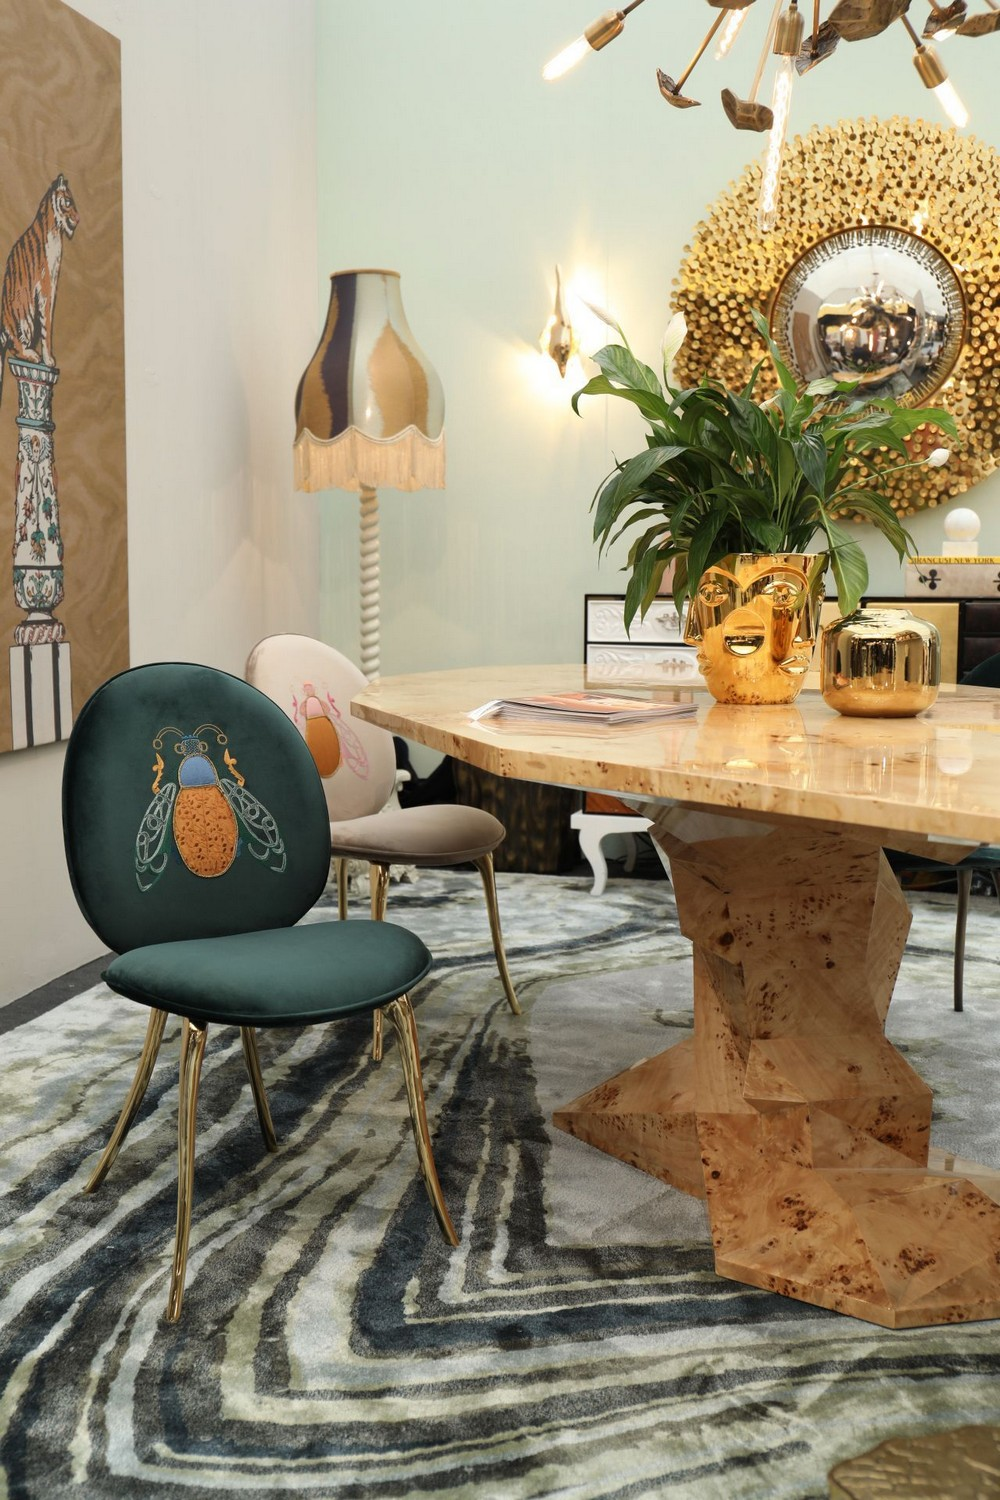 Thrilling Design Ventures to Experience During Maison et Objet 2019 9 maison et objet 2019 Thrilling Design Ventures to Experience During Maison et Objet 2019 Thrilling Design Ventures to Experience During Maison et Objet 2019 9